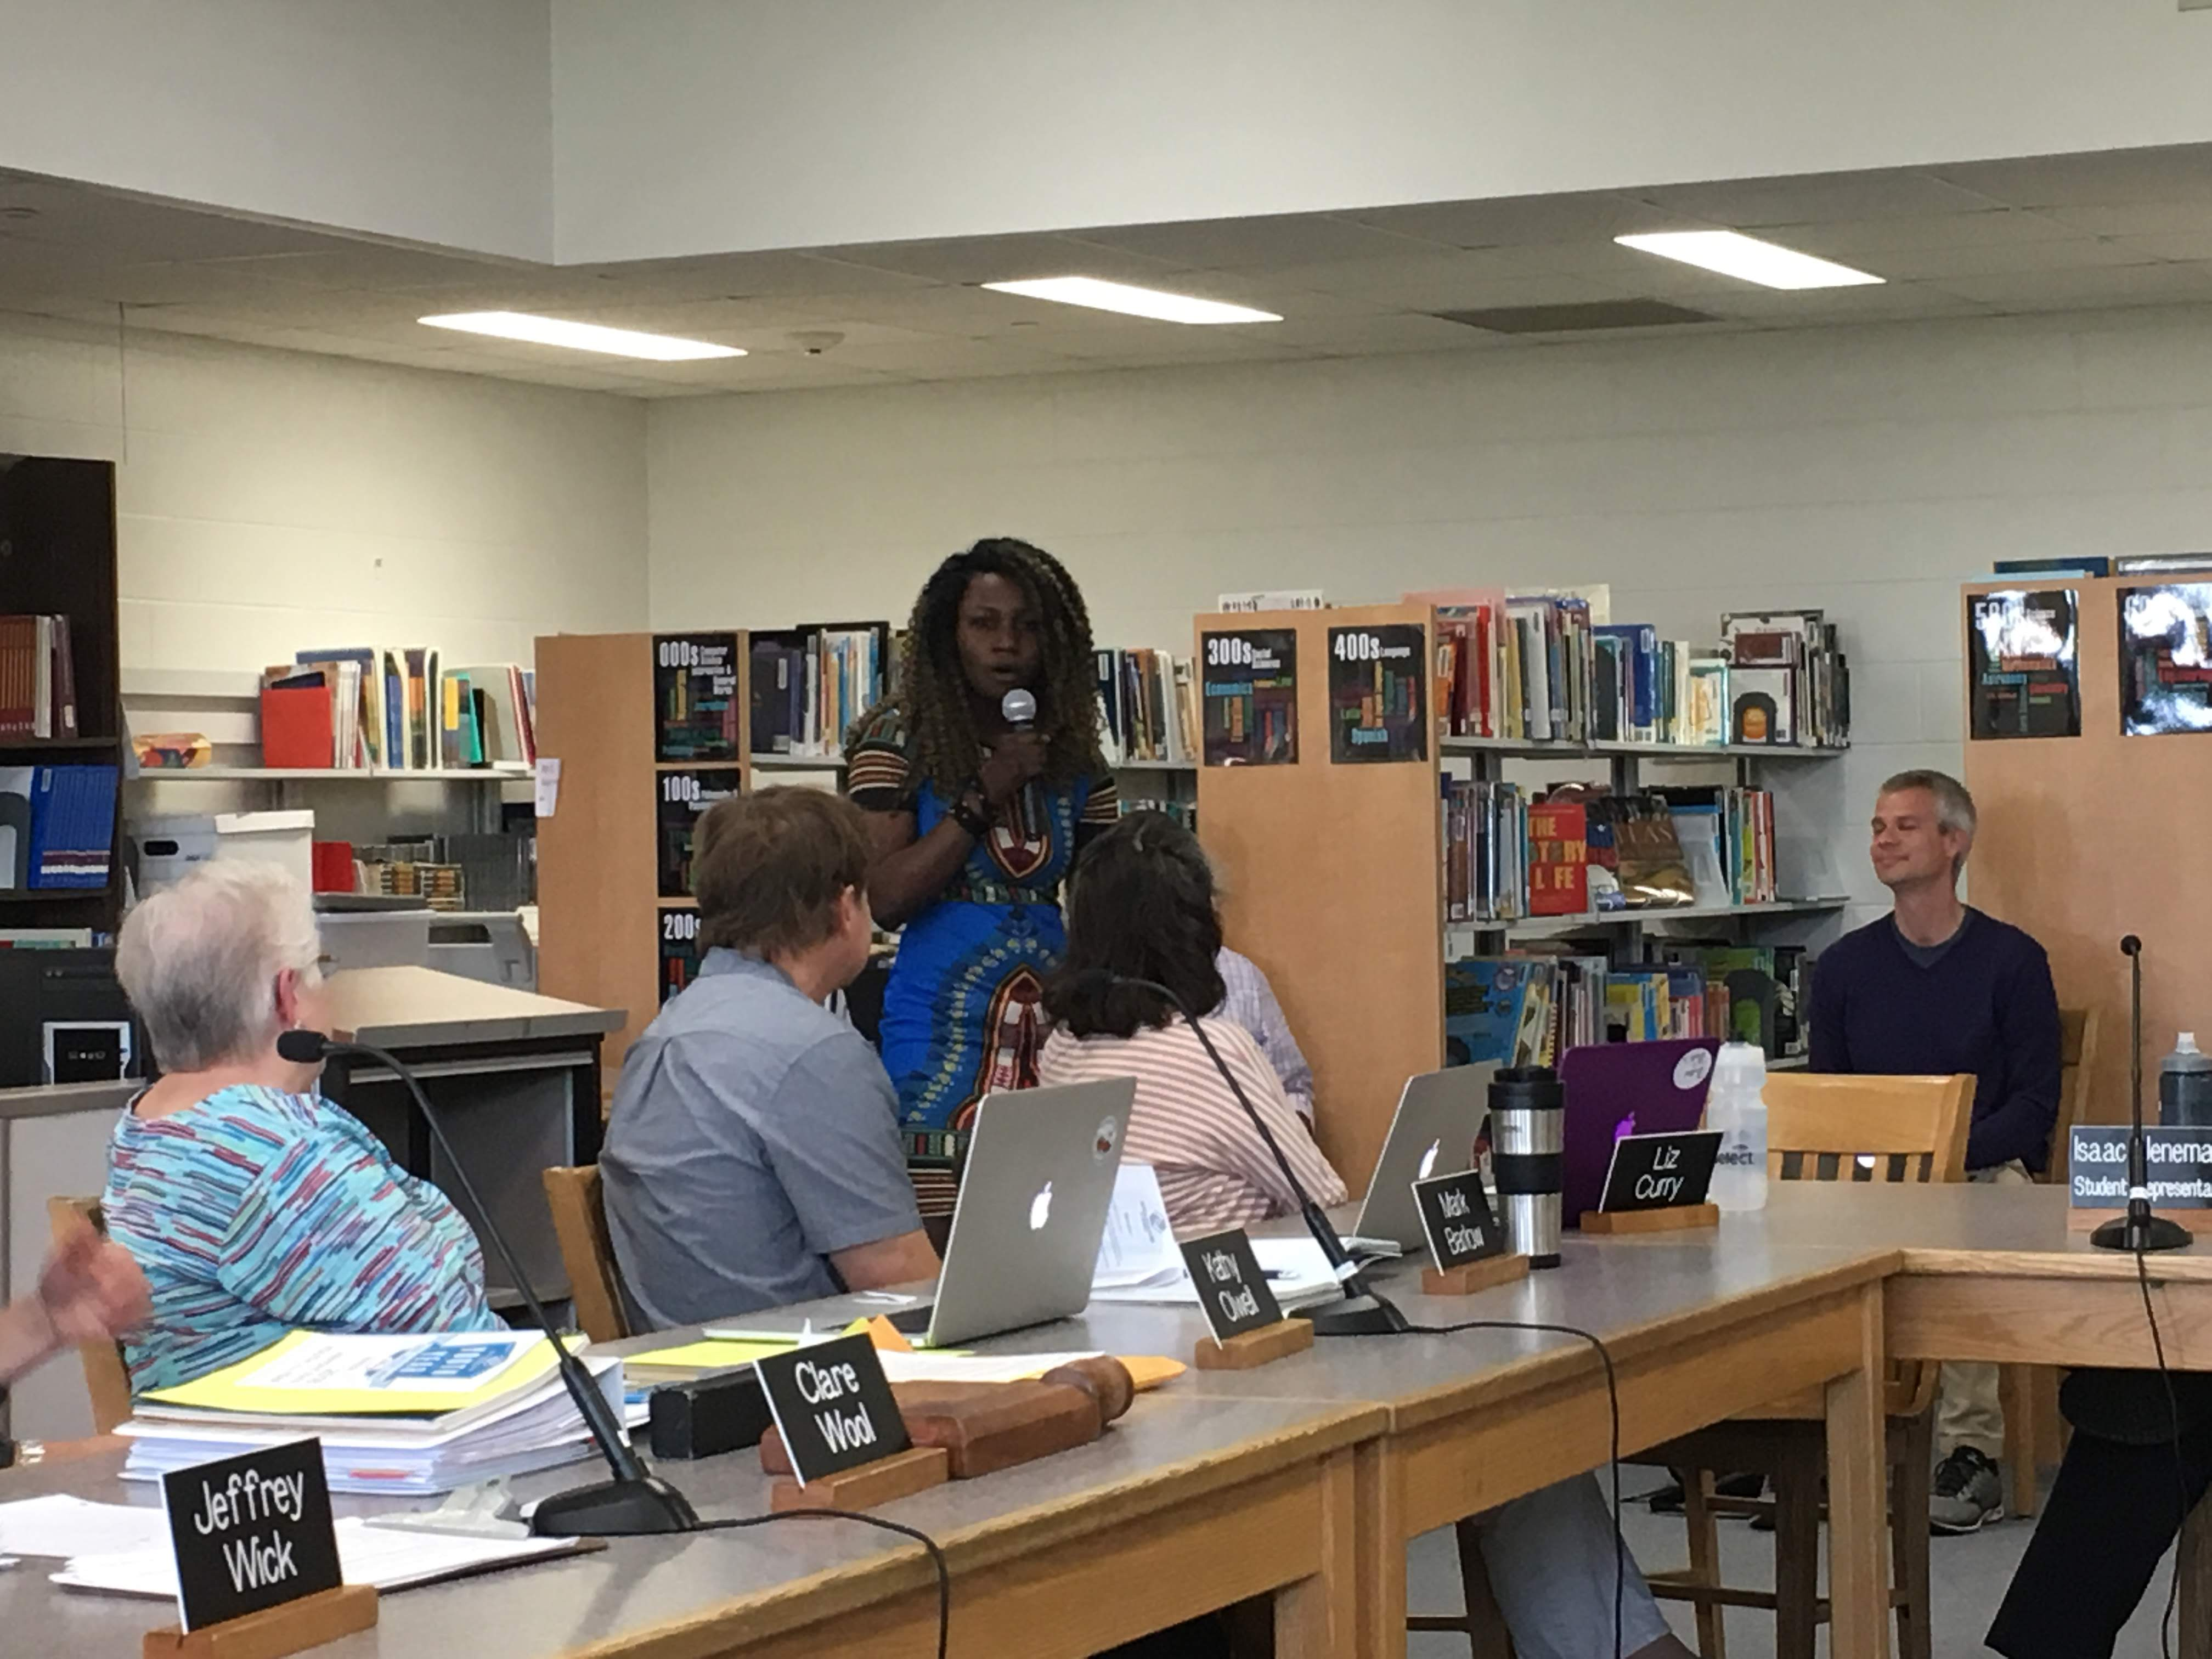 Senga giving her speech to the school board